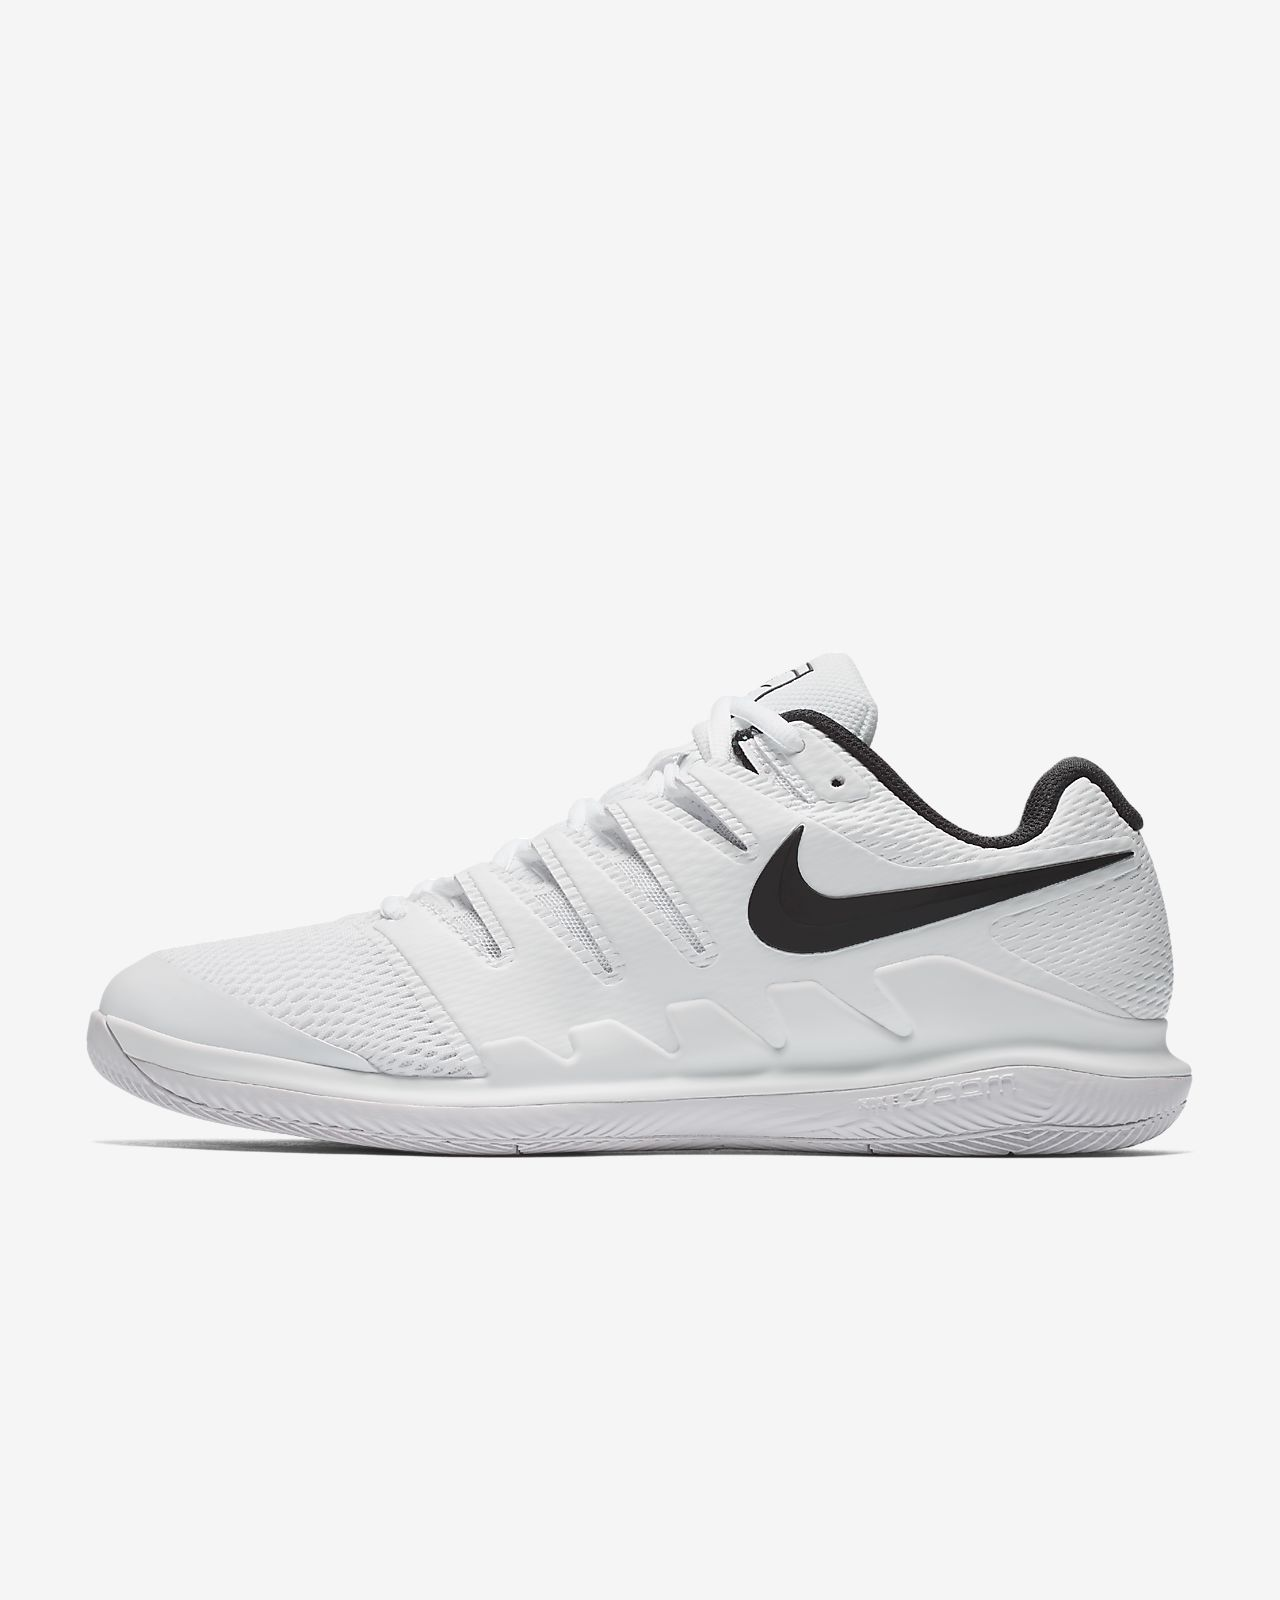 ff008ec99d2 Nike Air Zoom Vapor X HC Men s Tennis Shoe. Nike.com AU